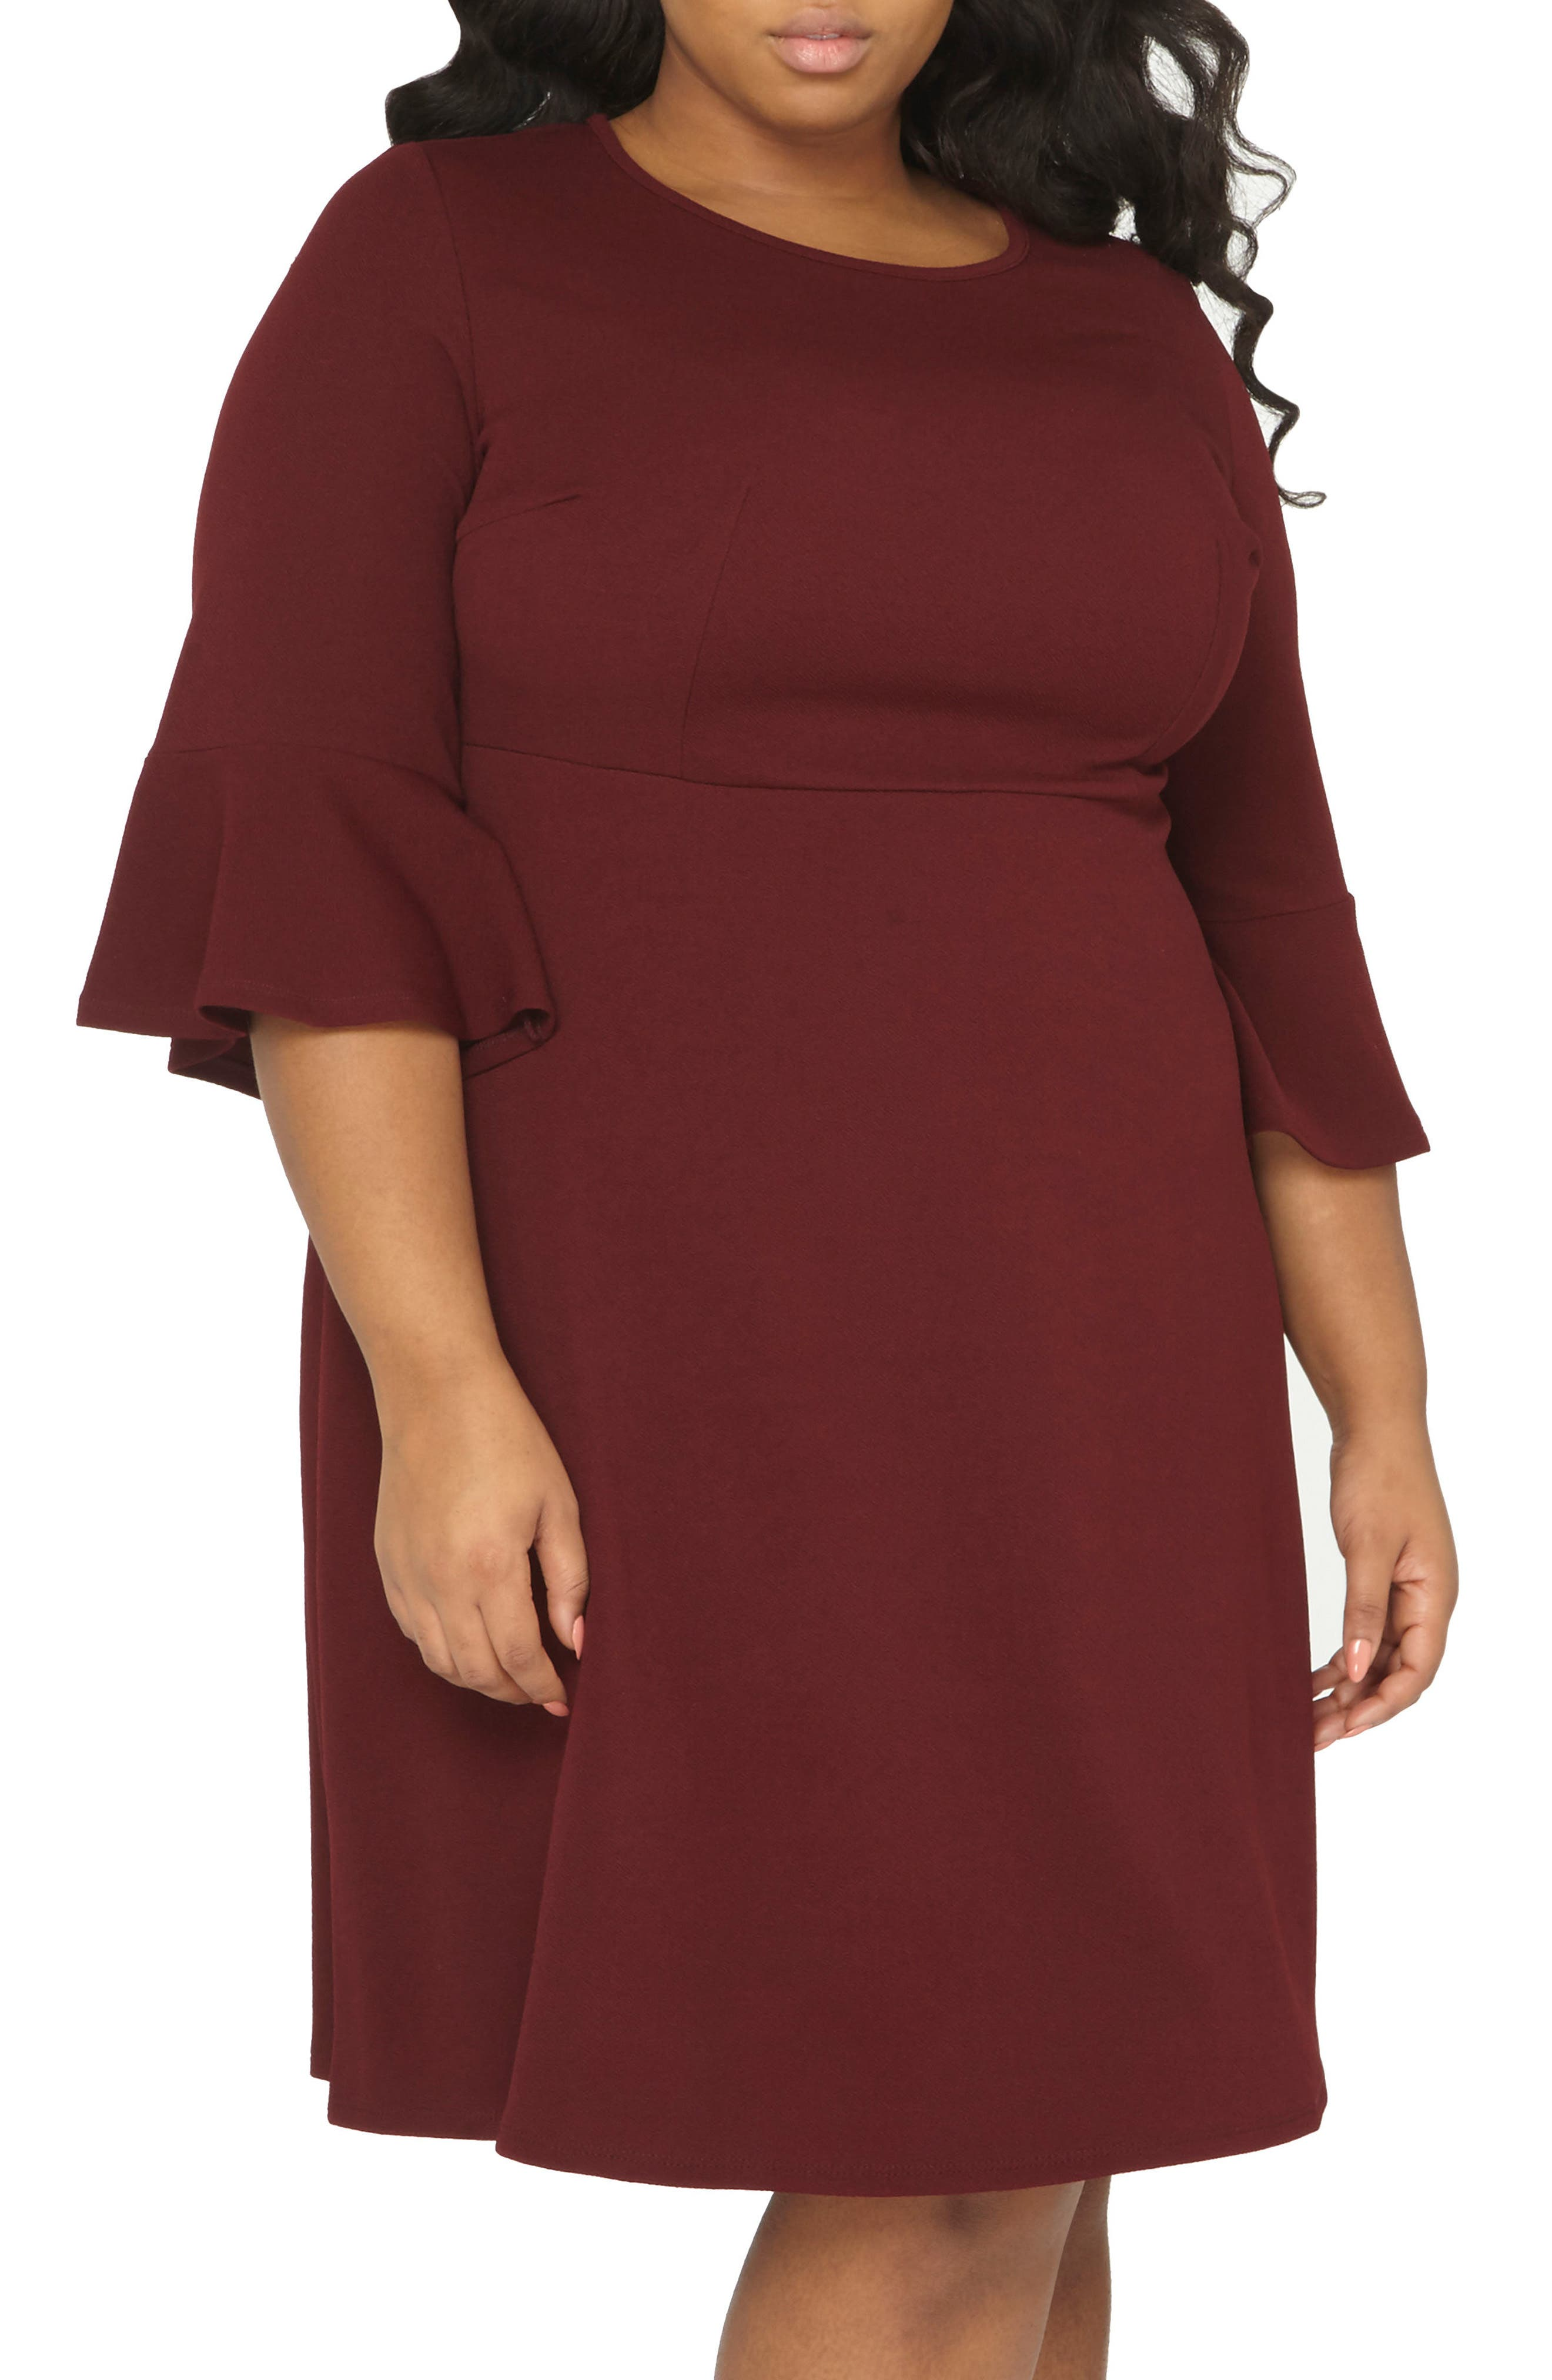 Ruffle Sleeve Fitted Dress,                         Main,                         color, 600